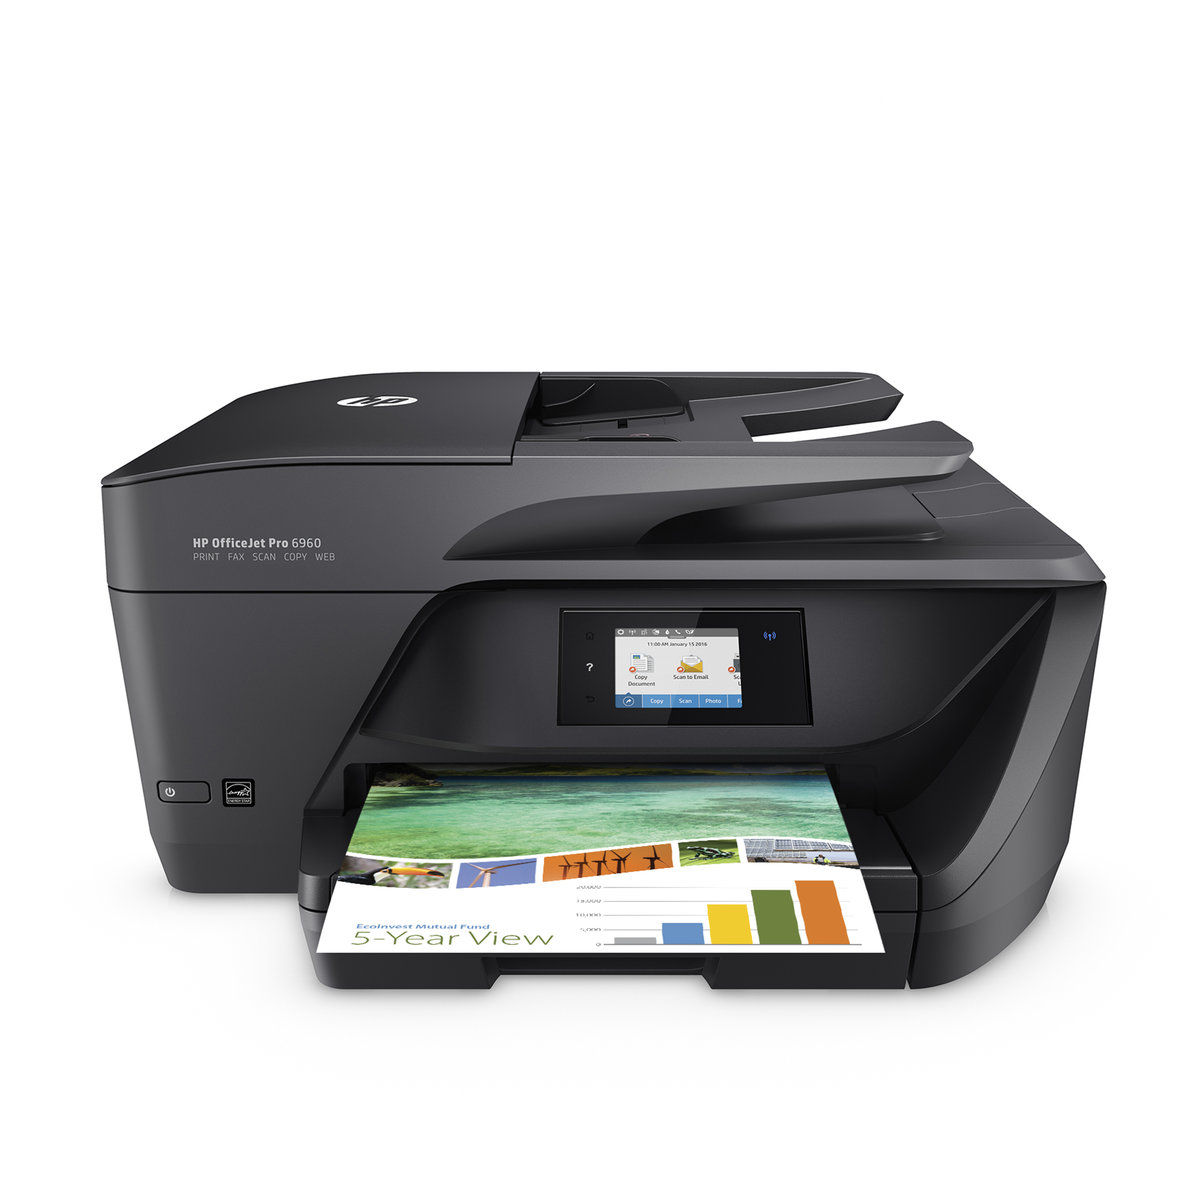 HP OFFICEJET PRO 6960 DRIVERS FOR WINDOWS 8